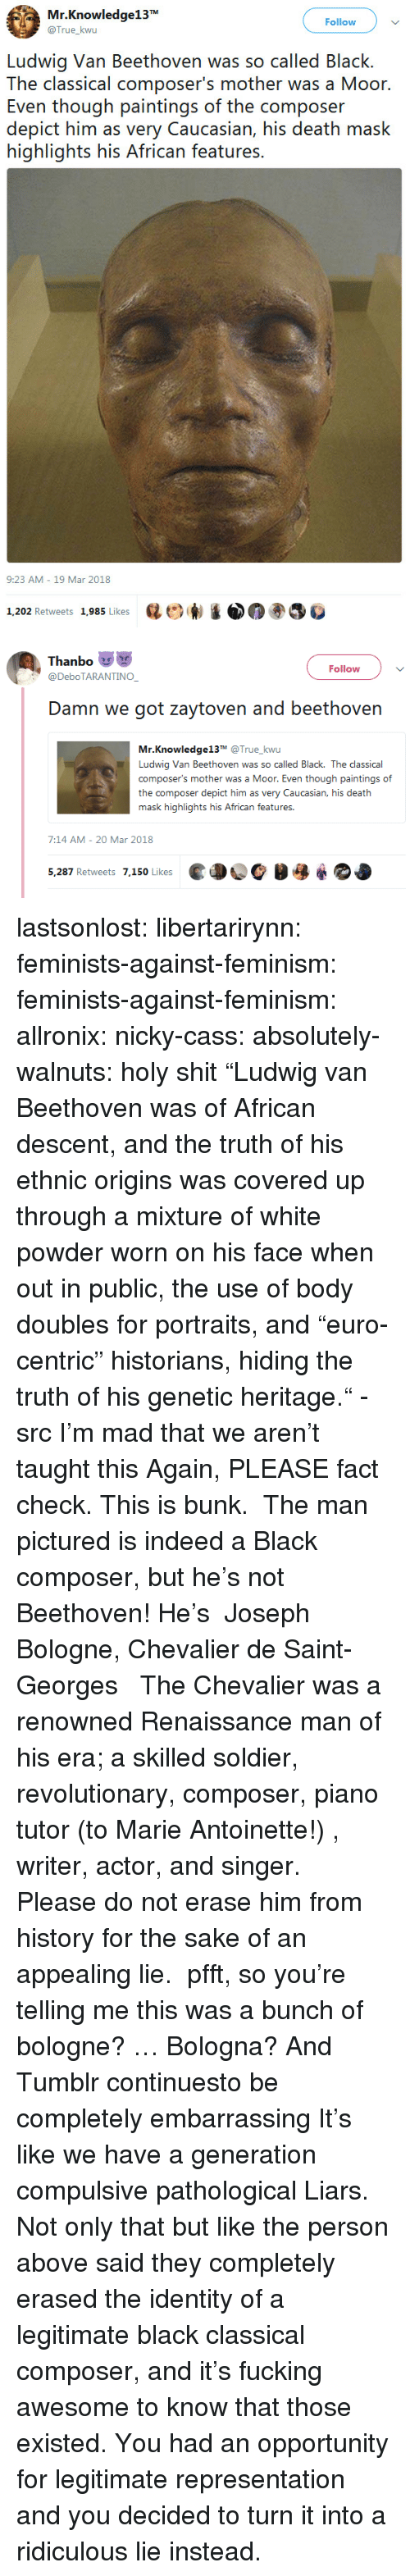 """Feminism, Fucking, and News: Mr.Knowledge13  @True_kwu  Follow  Ludwig Van Beethoven was so called Black.  The classical composer's mother was a Moor  Even though paintings of the composer  depict him as very Caucasian, his death mask  highlights his African features.  9:23 AM-19 Mar 2018  1,202 Retweets 1,985 Likes  砝ビ)  ③巻   Thanbo  @DeboTARANTINO  Follow  Damn we got zaytoven and beethovern  Mr.Knowledge13T @True_kwu  Ludwig Van Beethoven was so called Black. The classical  composer's mother was a Moor. Even though paintings of  the composer depict him as very Caucasian, his death  .む  7:14 AM- 20 Mar 2018  ed OC  5,287 Retweets 7,150 Likes lastsonlost:  libertarirynn:  feminists-against-feminism:  feminists-against-feminism: allronix:  nicky-cass:  absolutely-walnuts:  holy shit """"Ludwig van Beethoven was of African descent, and the truth of his ethnic origins was covered up through a mixture of white powder worn on his face when out in public, the use of body doubles for portraits, and """"euro-centric"""" historians, hiding the truth of his genetic heritage."""" - src   I'm mad that we aren't taught this  Again, PLEASE fact check. This is bunk. The man pictured is indeed a Black composer, but he's not Beethoven! He's  Joseph Bologne, Chevalier de Saint-Georges   The Chevalier was a renowned Renaissance man of his era; a skilled soldier, revolutionary, composer, piano tutor (to Marie Antoinette!) , writer, actor, and singer. Please do not erase him from history for the sake of an appealing lie.  pfft, so you're telling me this was a bunch of bologne?  … Bologna?  And Tumblr continuesto be completely embarrassing  It's like we have a generation compulsive pathological Liars.  Not only that but like the person above said they completely erased the identity of a legitimate black classical composer, and it's fucking awesome to know that those existed. You had an opportunity for legitimate representation and you decided to turn it into a ridiculous lie instead."""